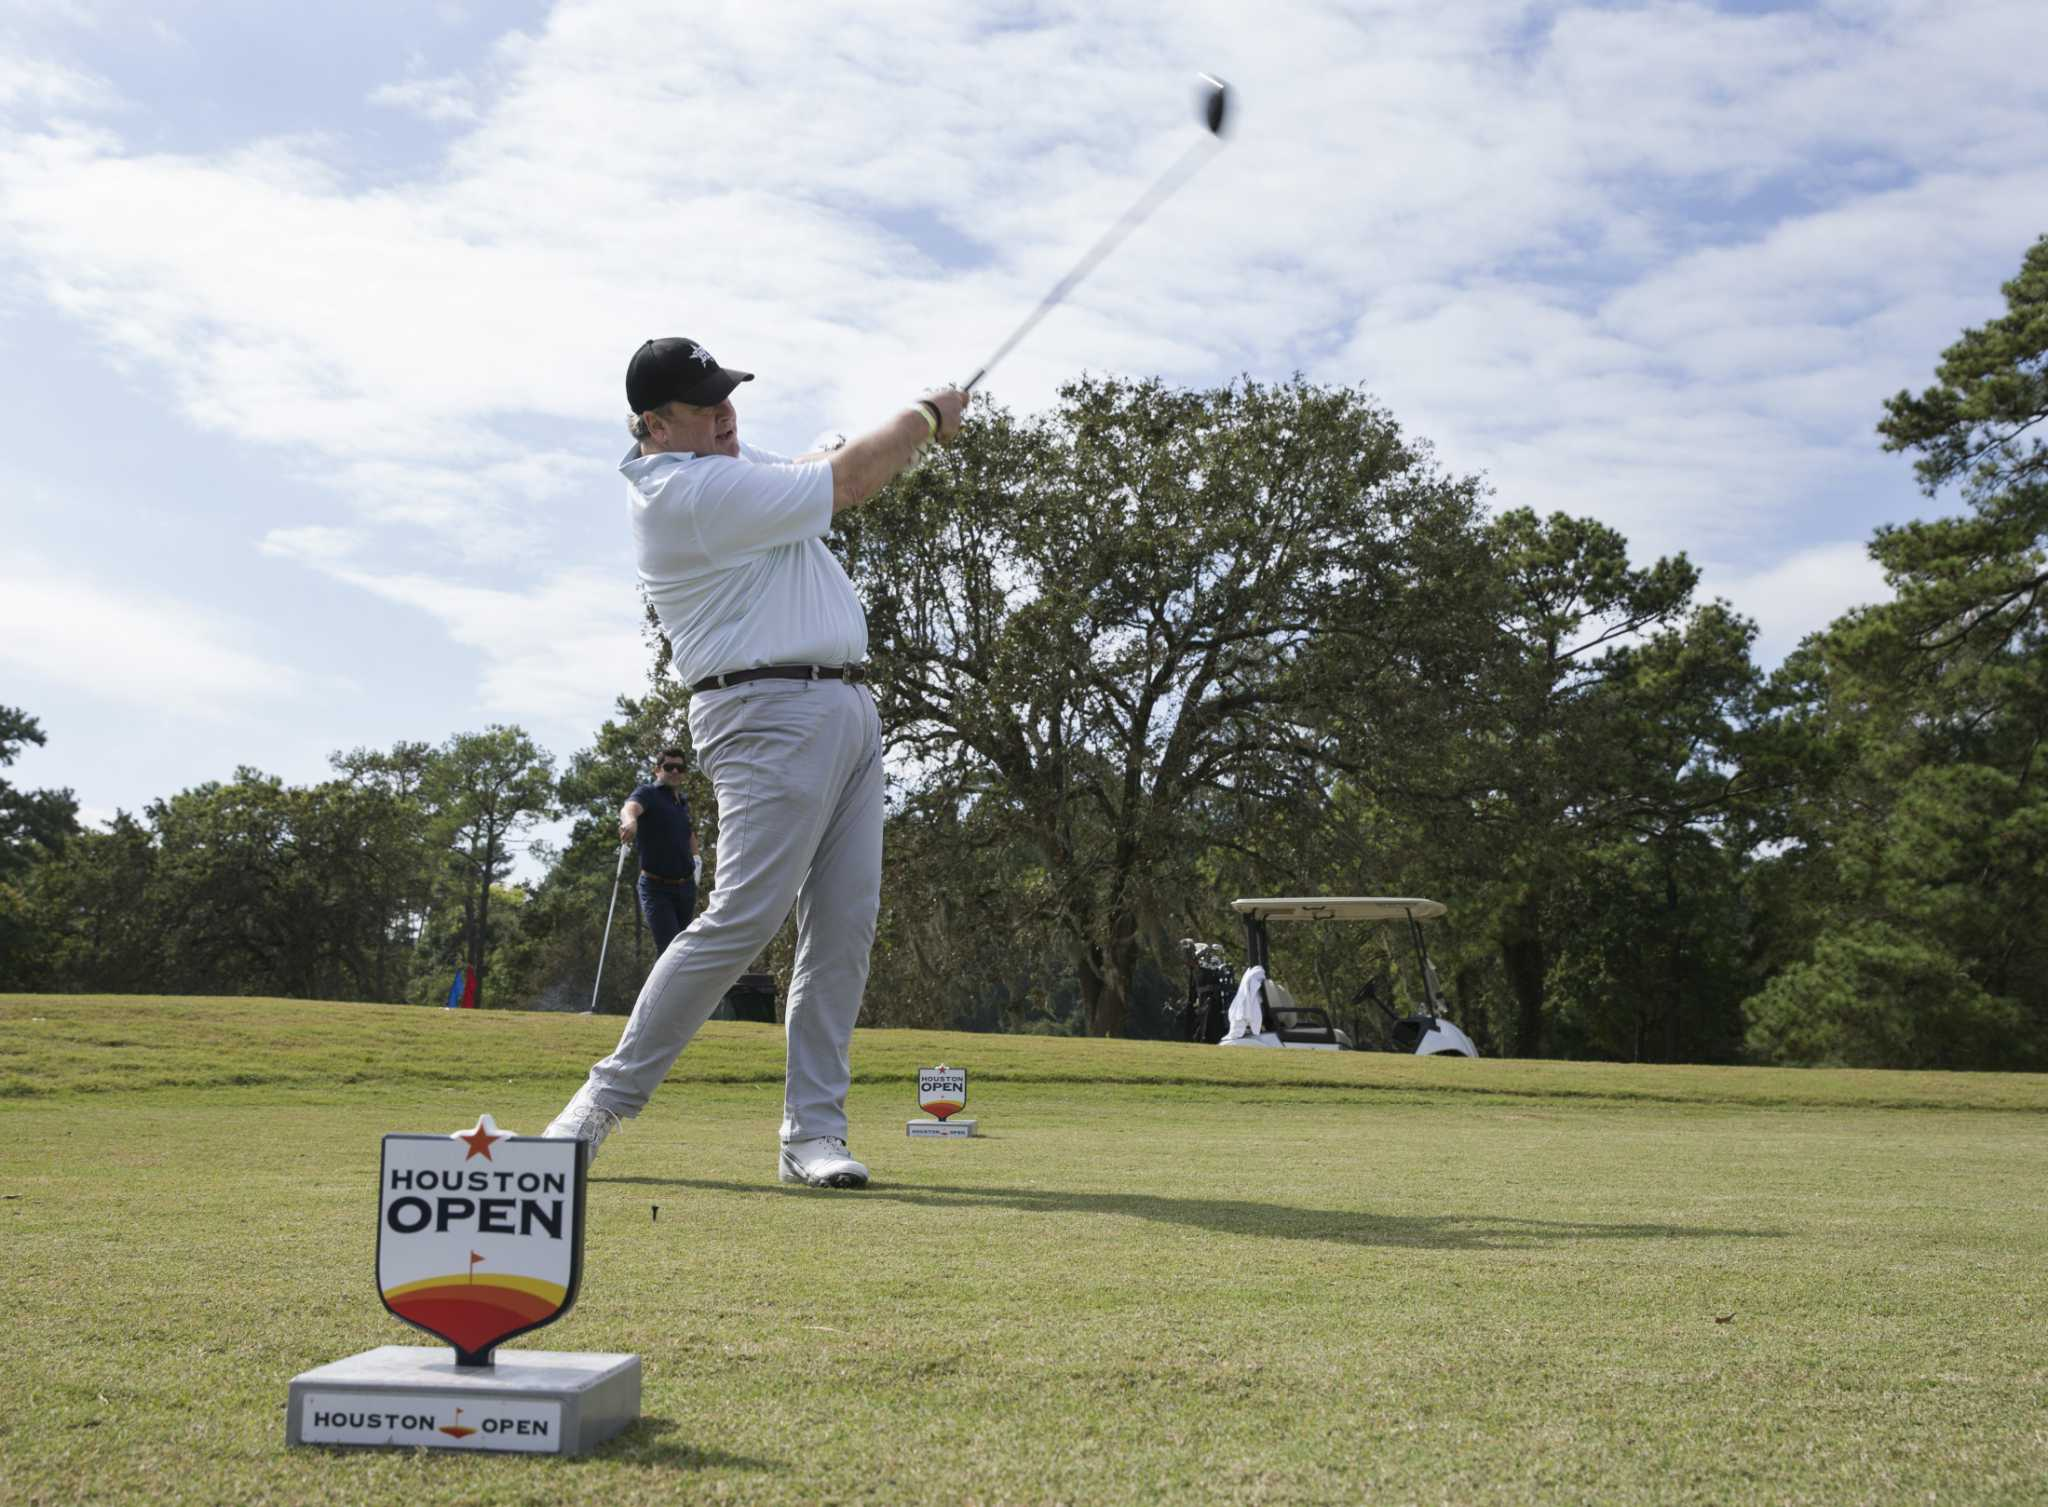 Jim Crane hits first shot at newly reopened Memorial Park golf course